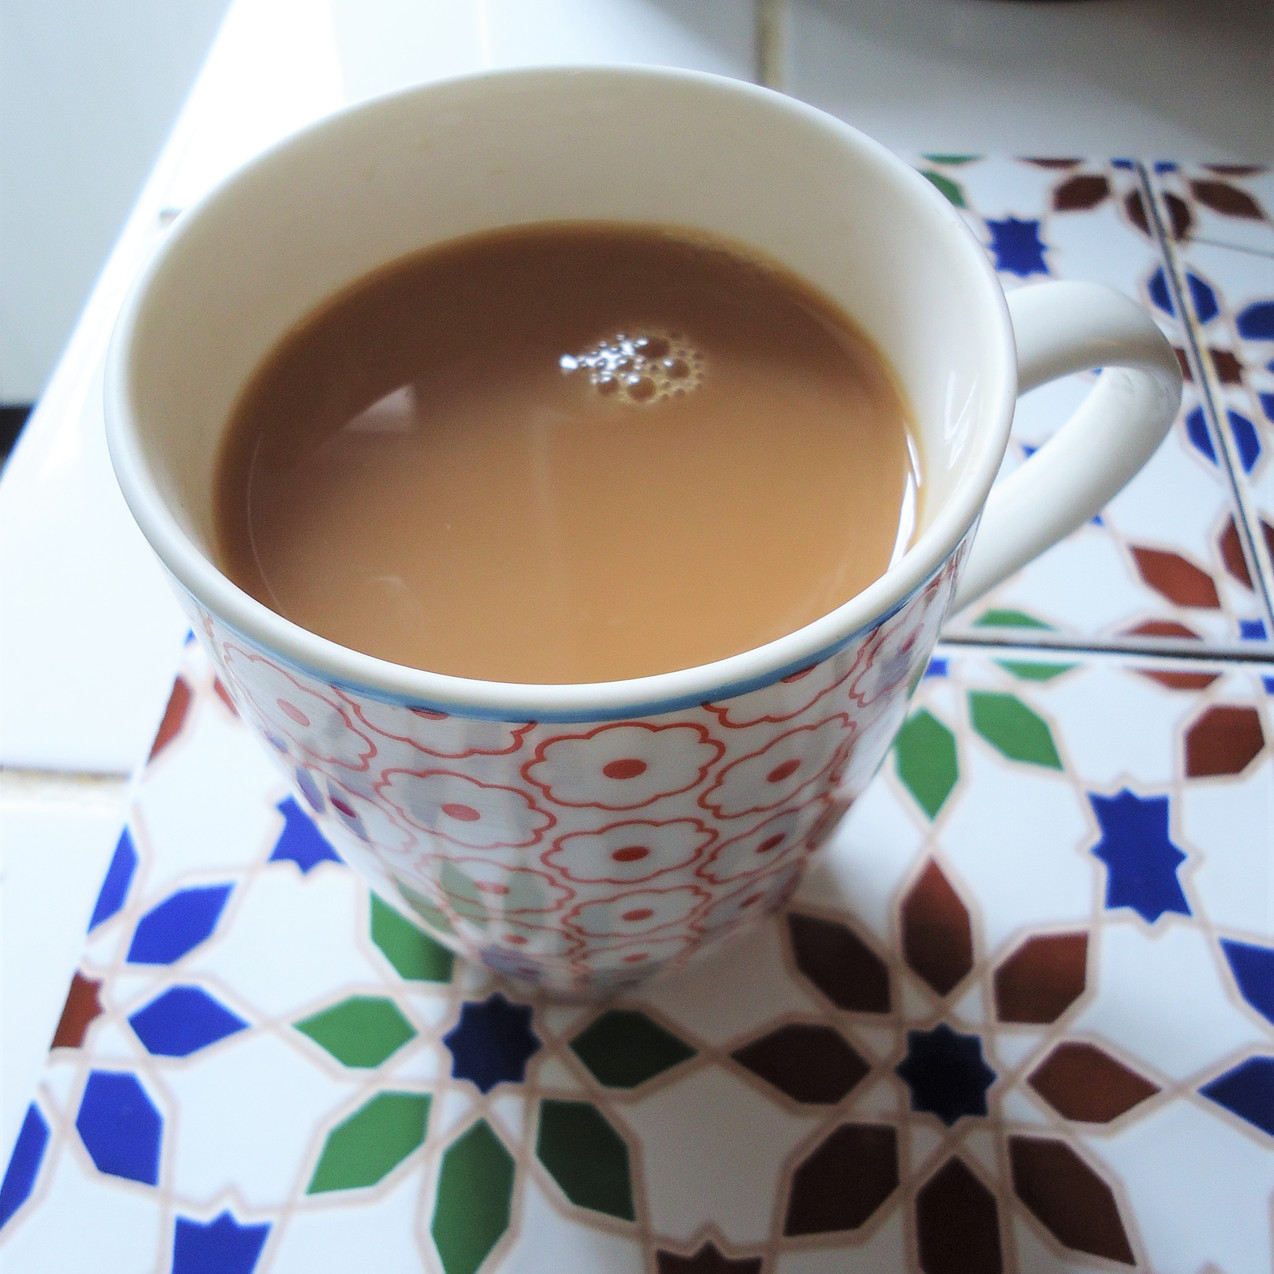 A cup of 'PG Tips' tea.